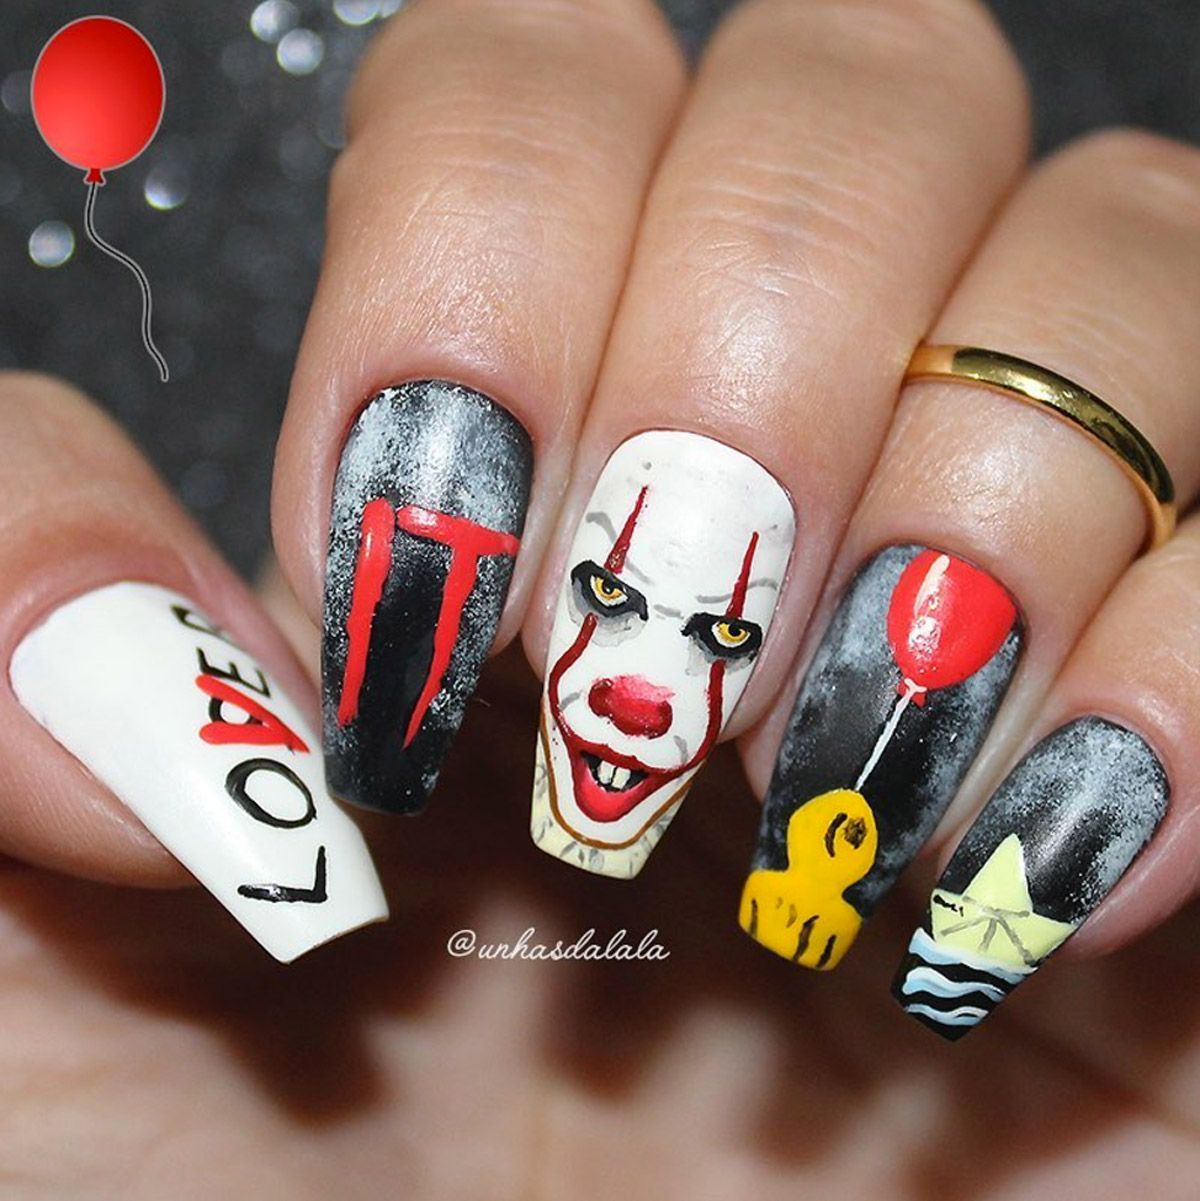 Waterproof Cream Color For Eyes Jet Deep Black In 2020 Gothic Nails Scary Nails Holloween Nails